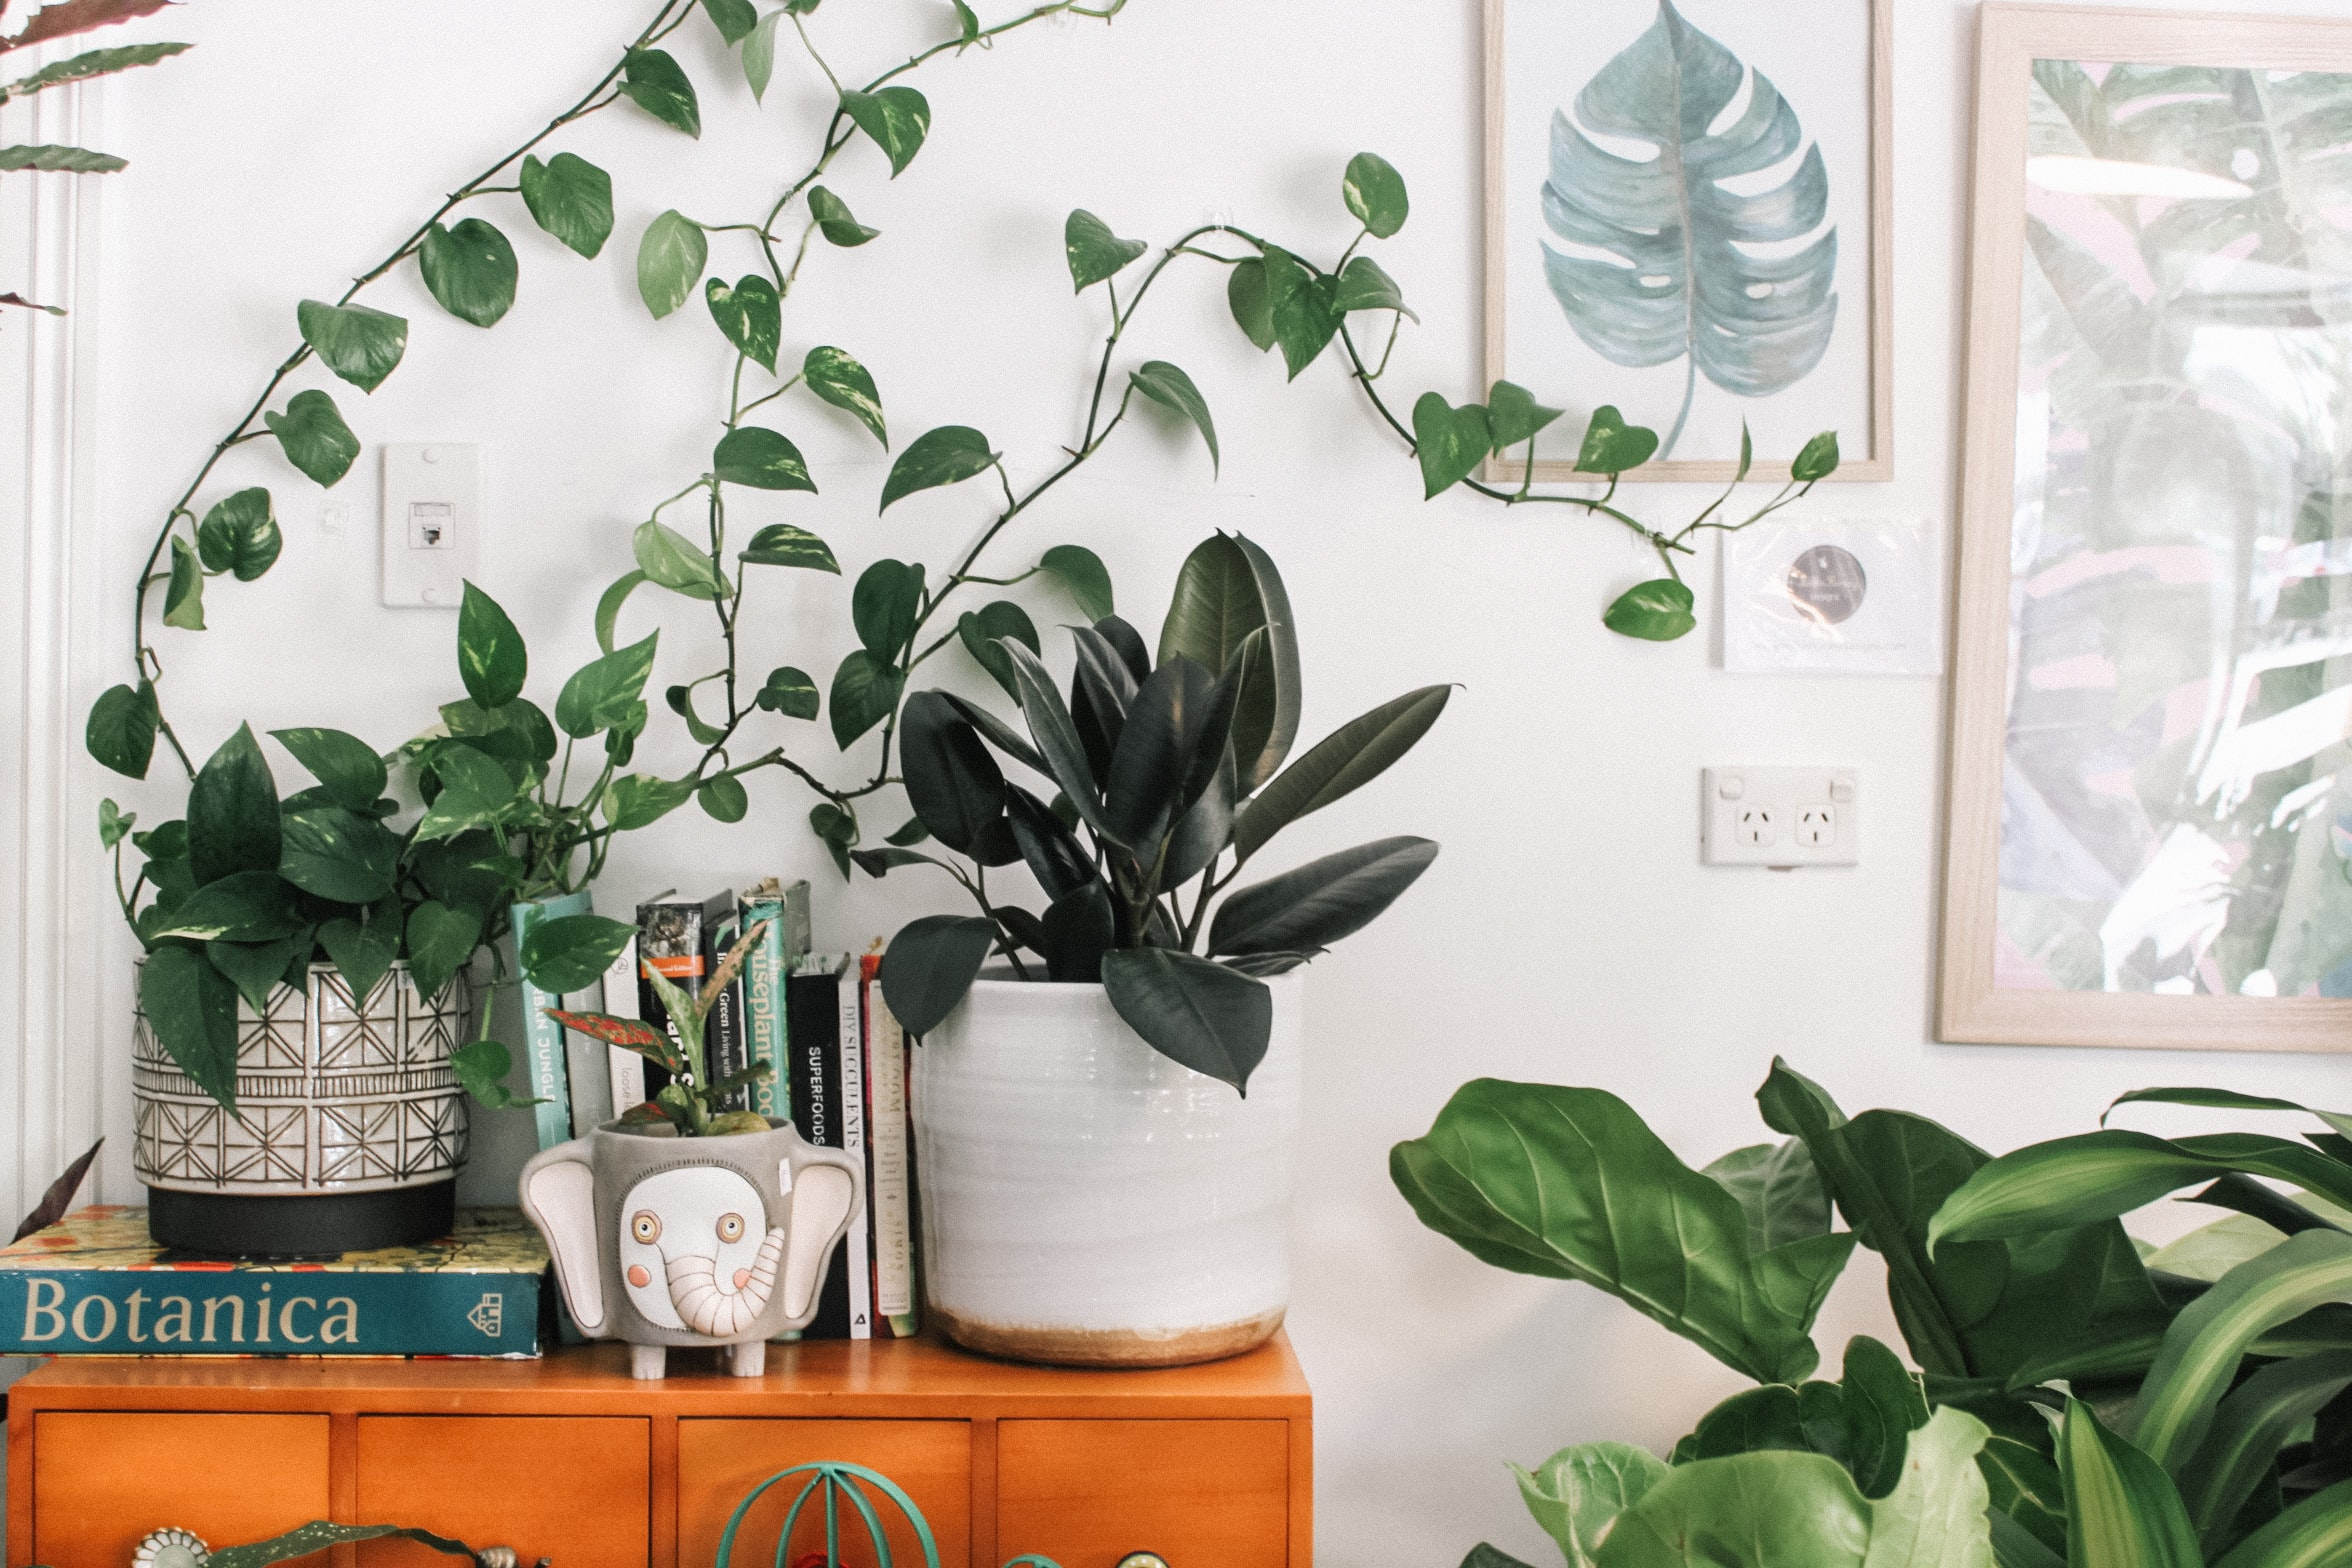 Best Features To Have In A Plant Stand